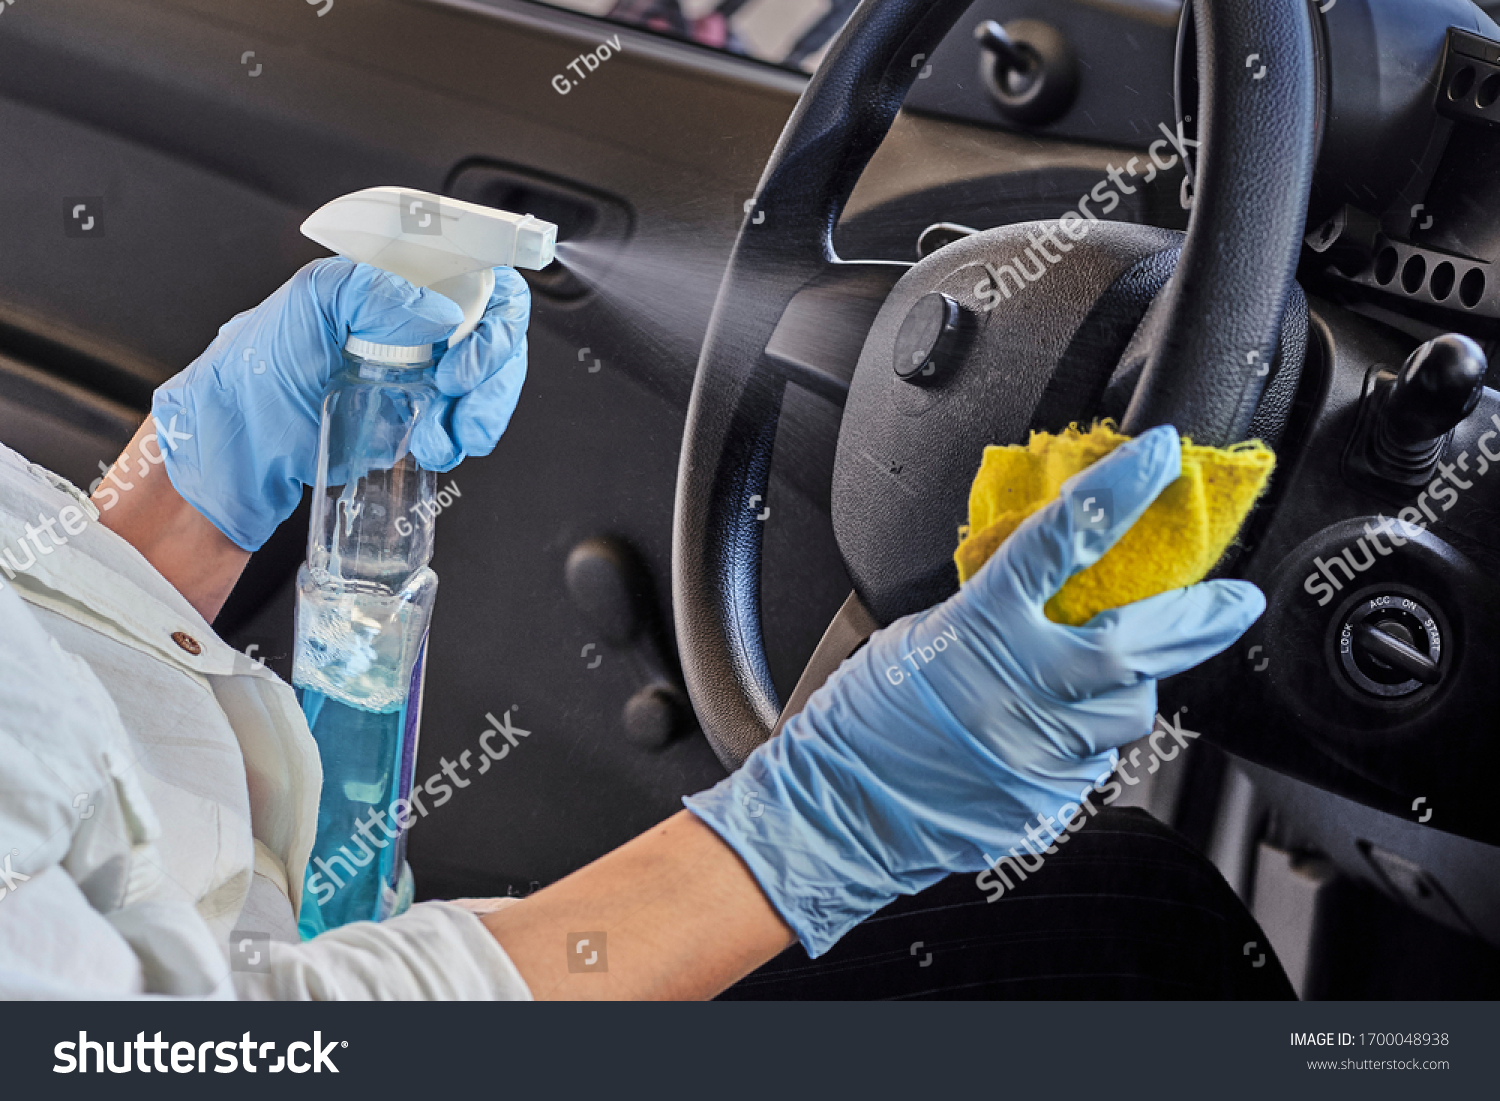 Woman in rubber protective glove disinfecting car steering wheel. Cleaning vehicle inside for protection from Coronavirus disease. Epidemic Outbreak